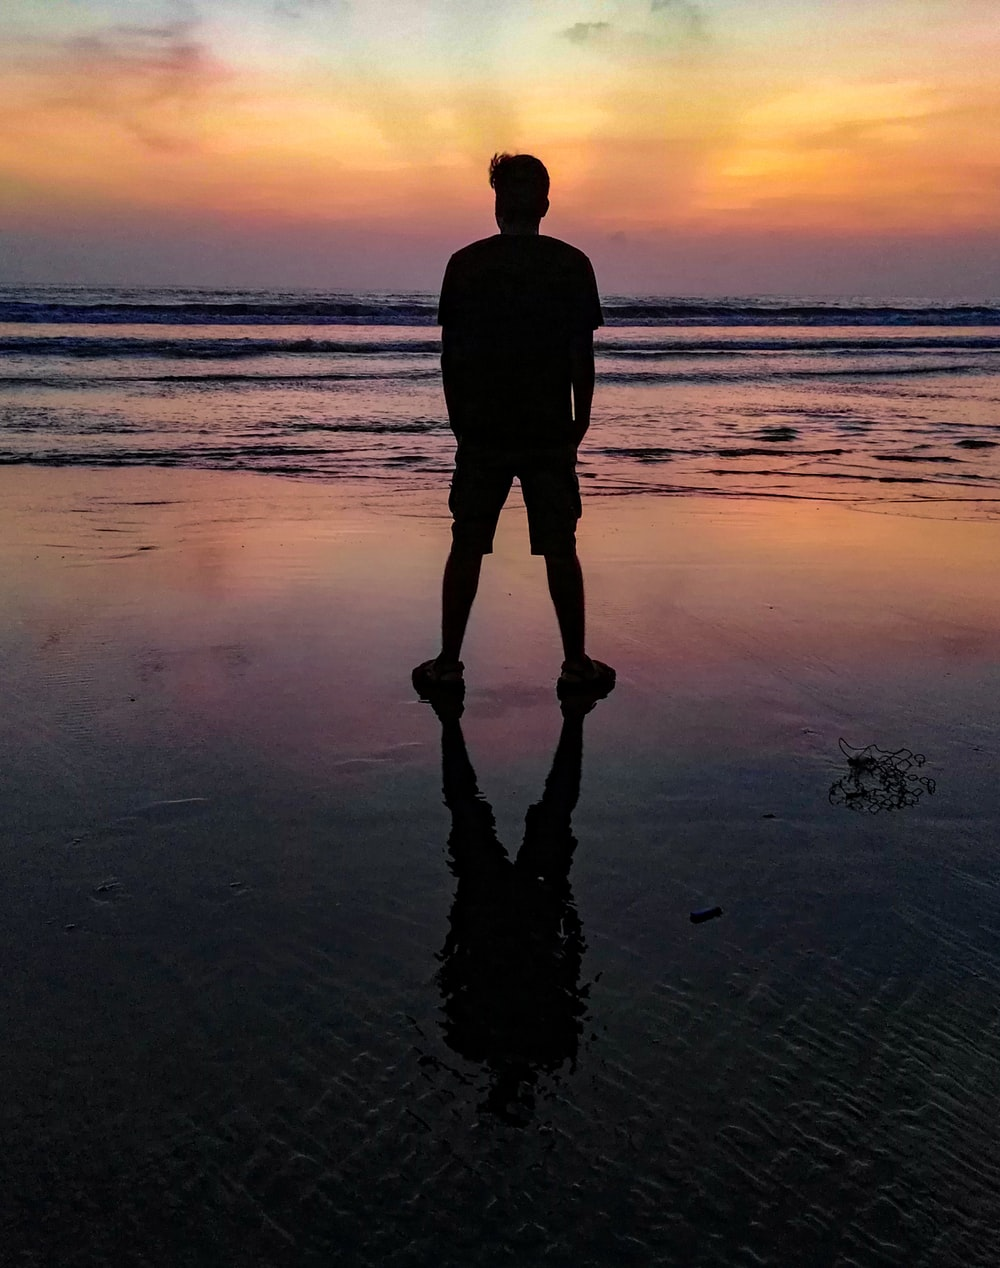 man standing on shore at night